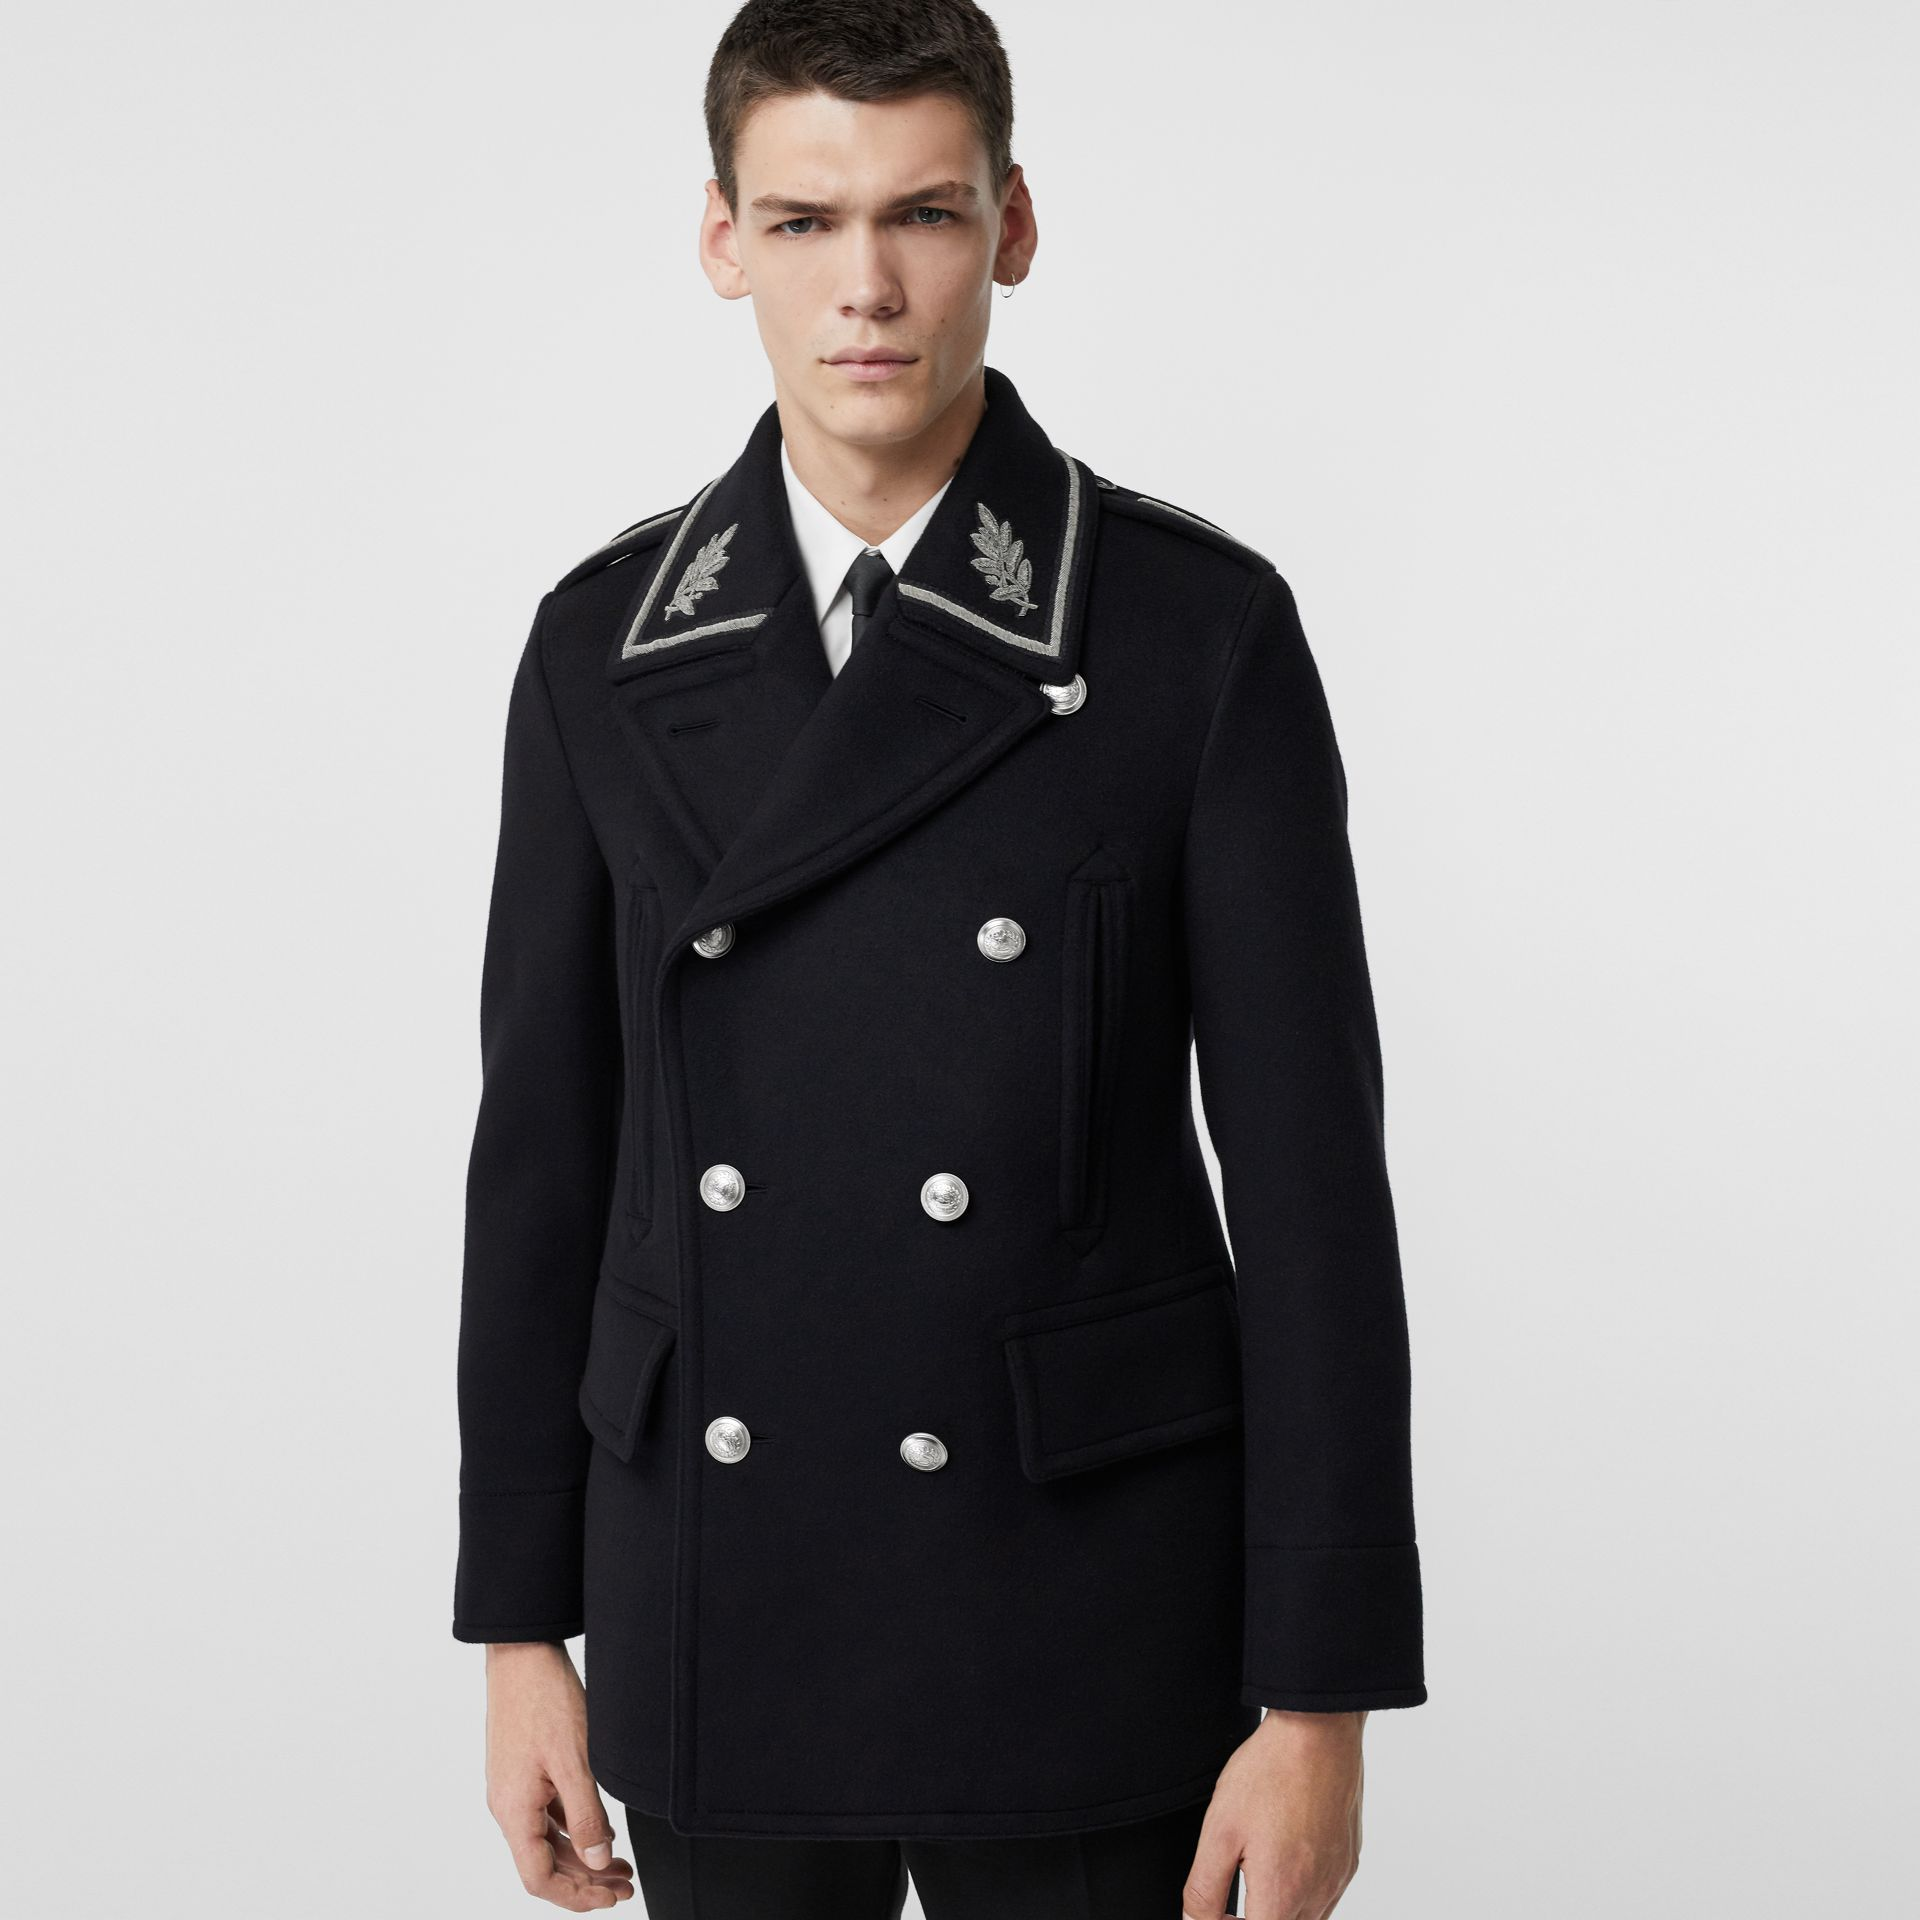 Bullion Wool Cashmere Pea Coat in Dark Navy - Men | Burberry - gallery image 5